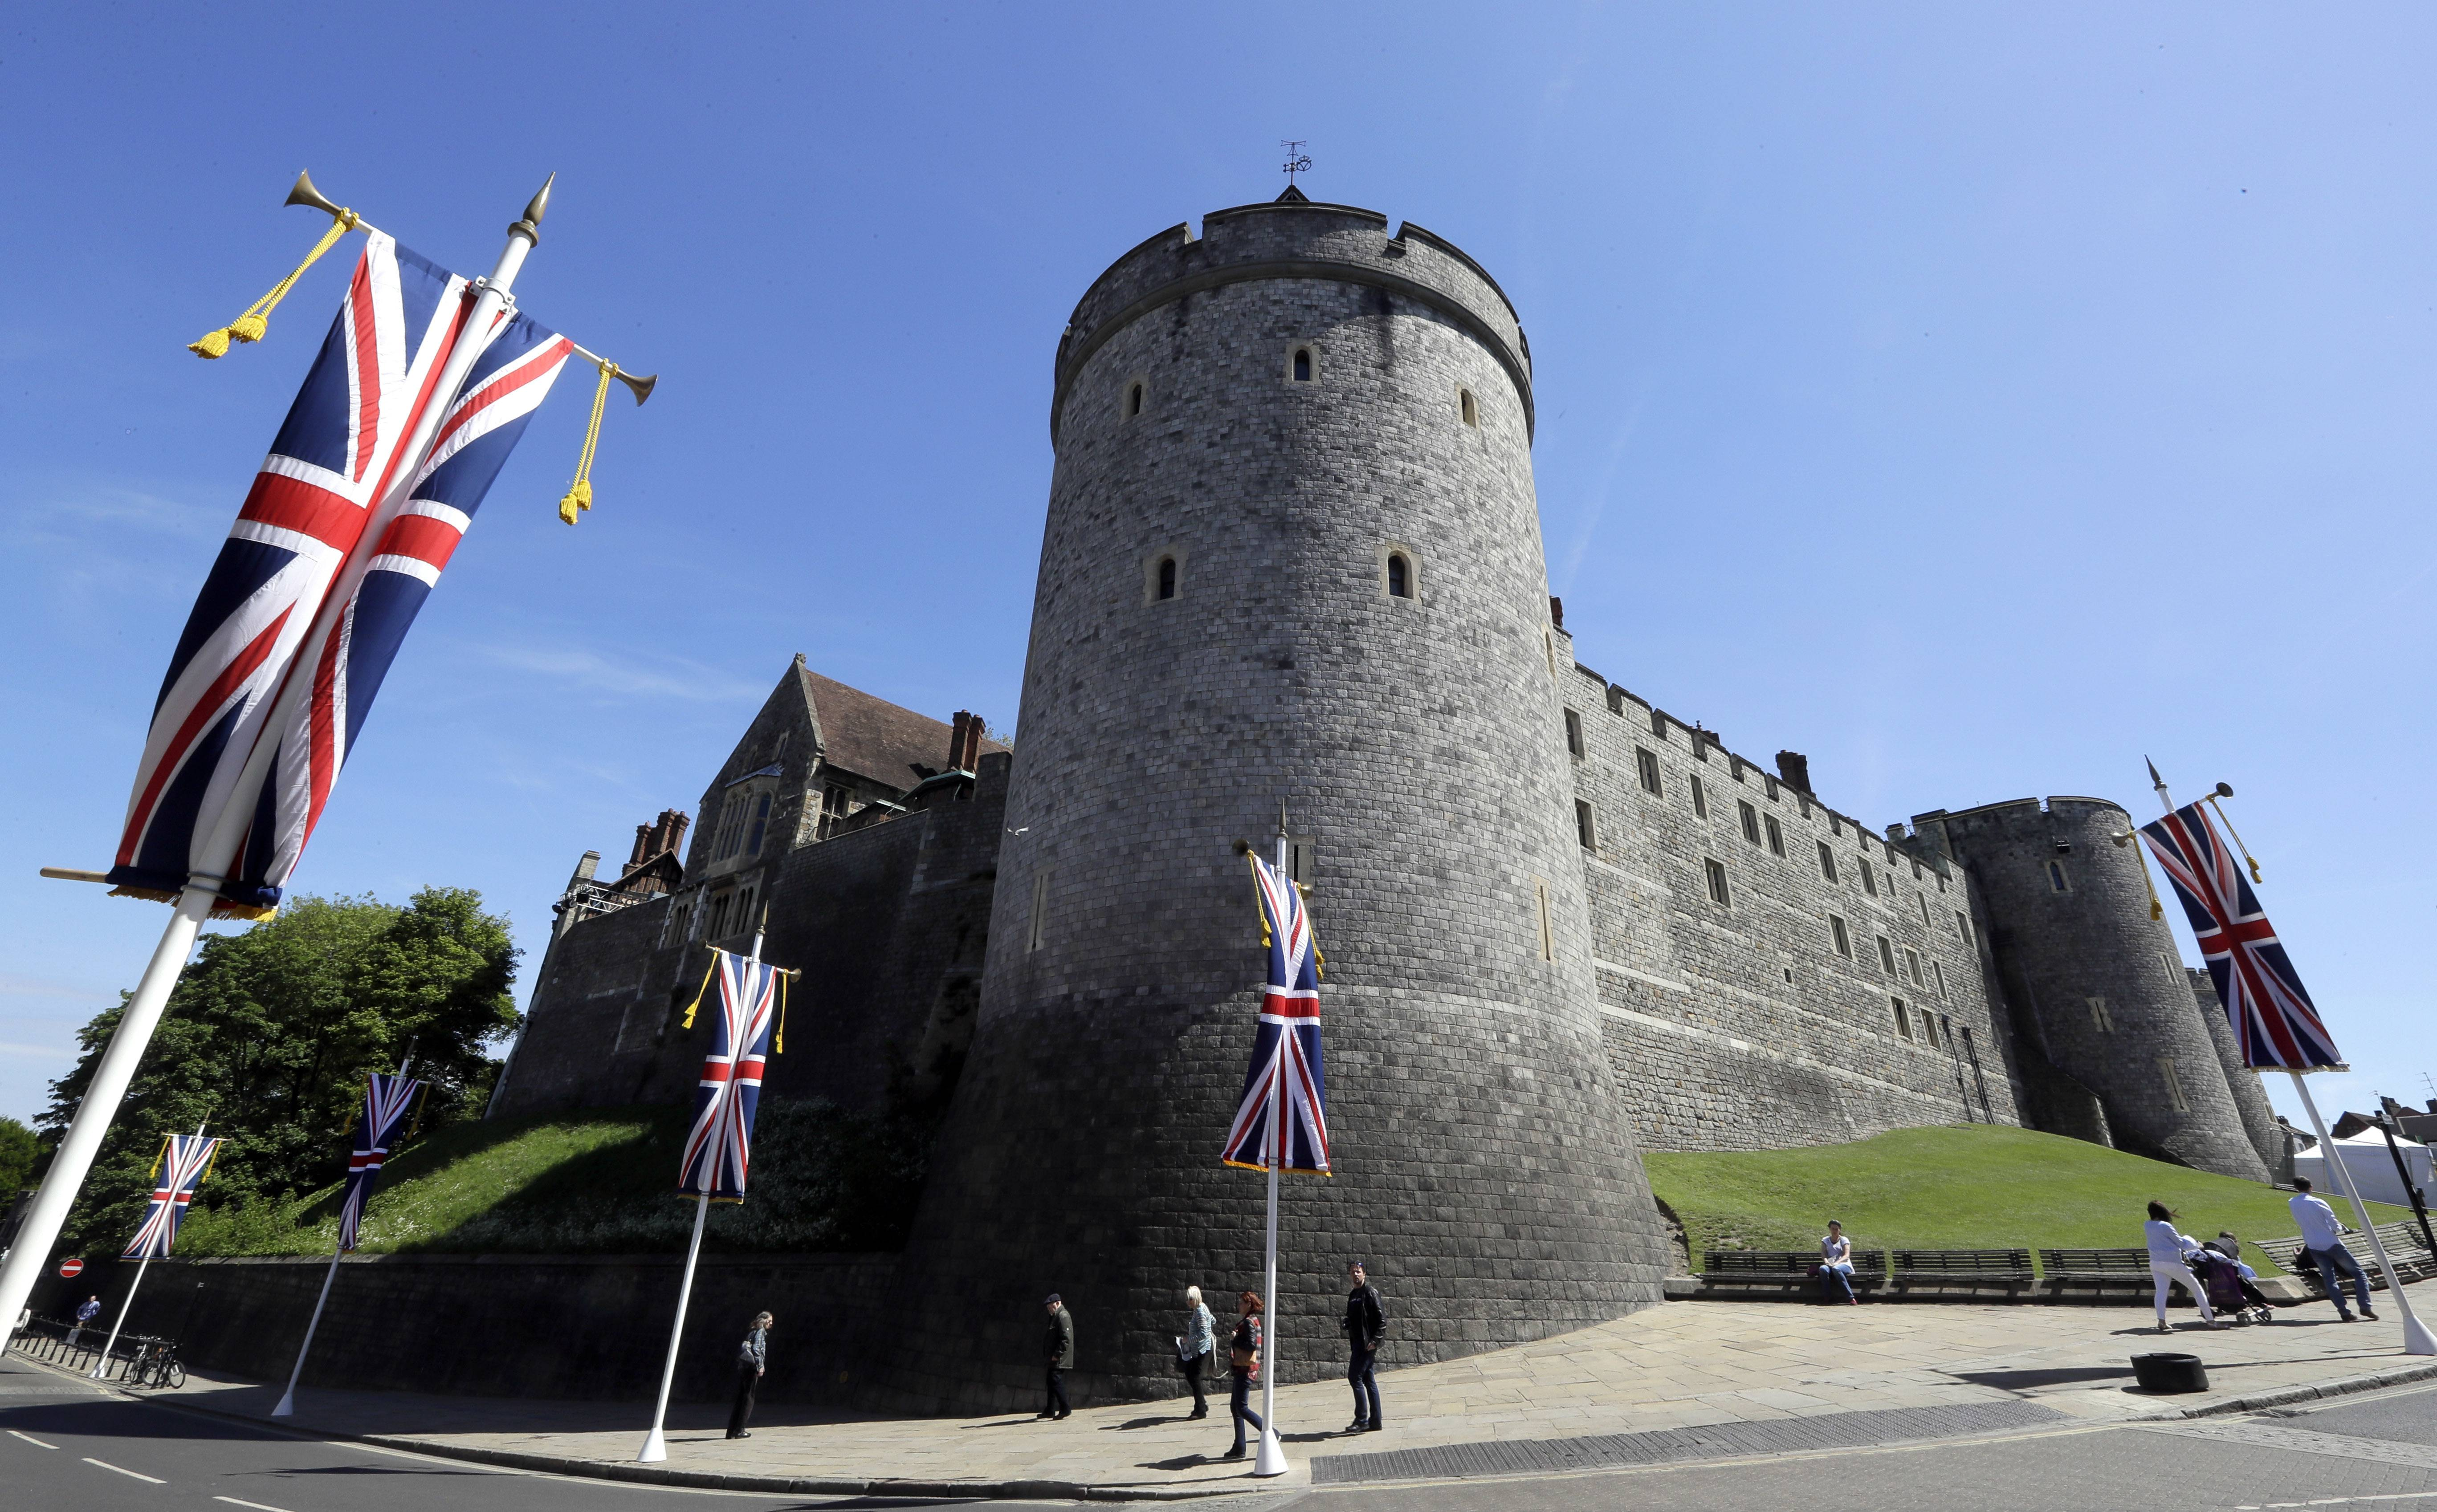 Flags fly in front of the castle in Windsor, England, Monday. Preparations are being made in the town ahead of the wedding of Britain's Prince Harry and Meghan Markle that will take place in Windsor on Saturday.